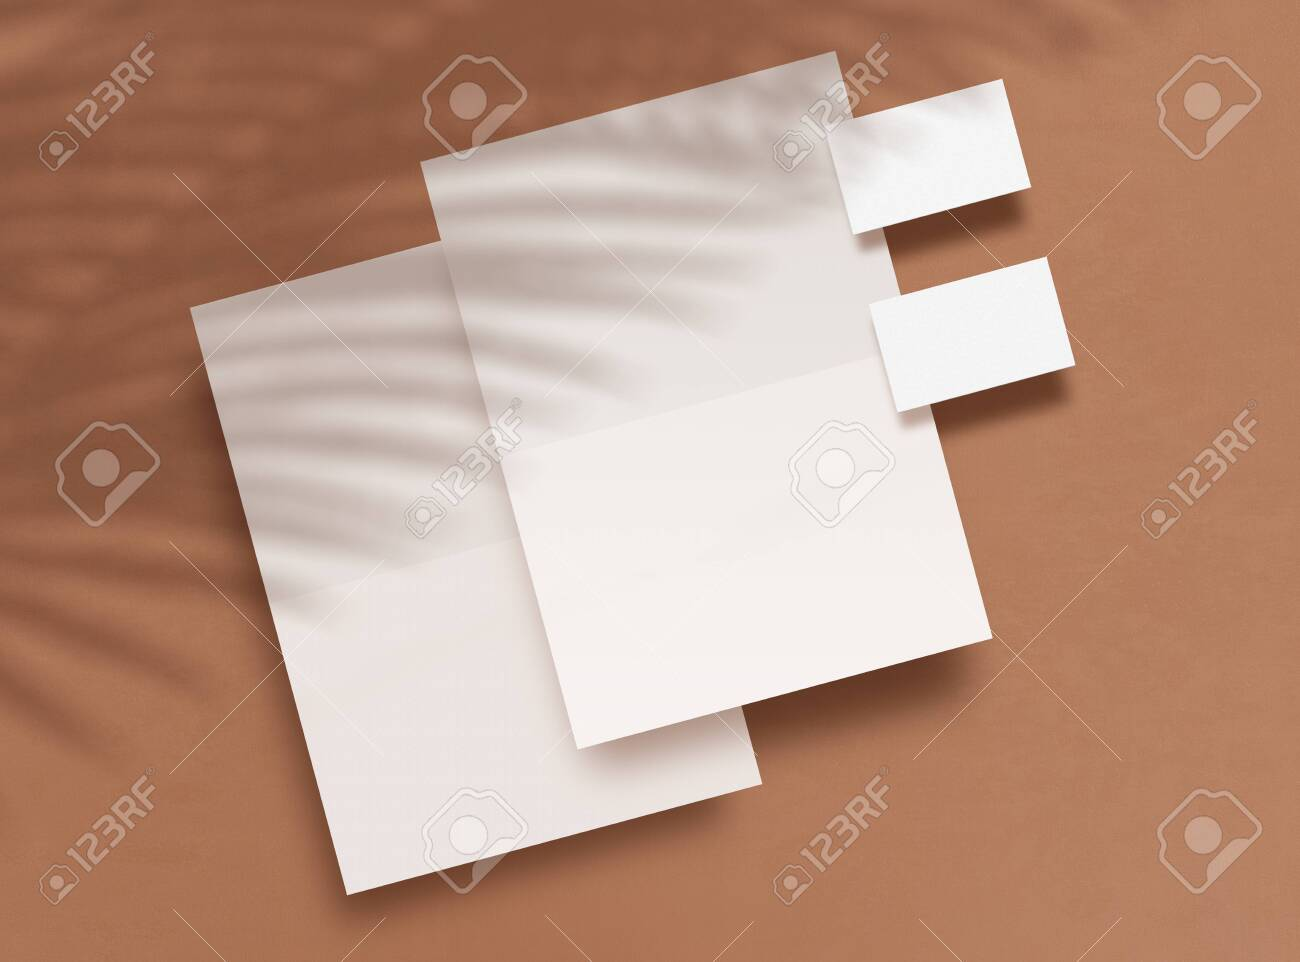 Top view of blank forms and business cards on a brown background. Shadows overlays from tropical plants. Empty objects to place your design. Corporate identity Branding Mock up. 3D illustration. - 149452585